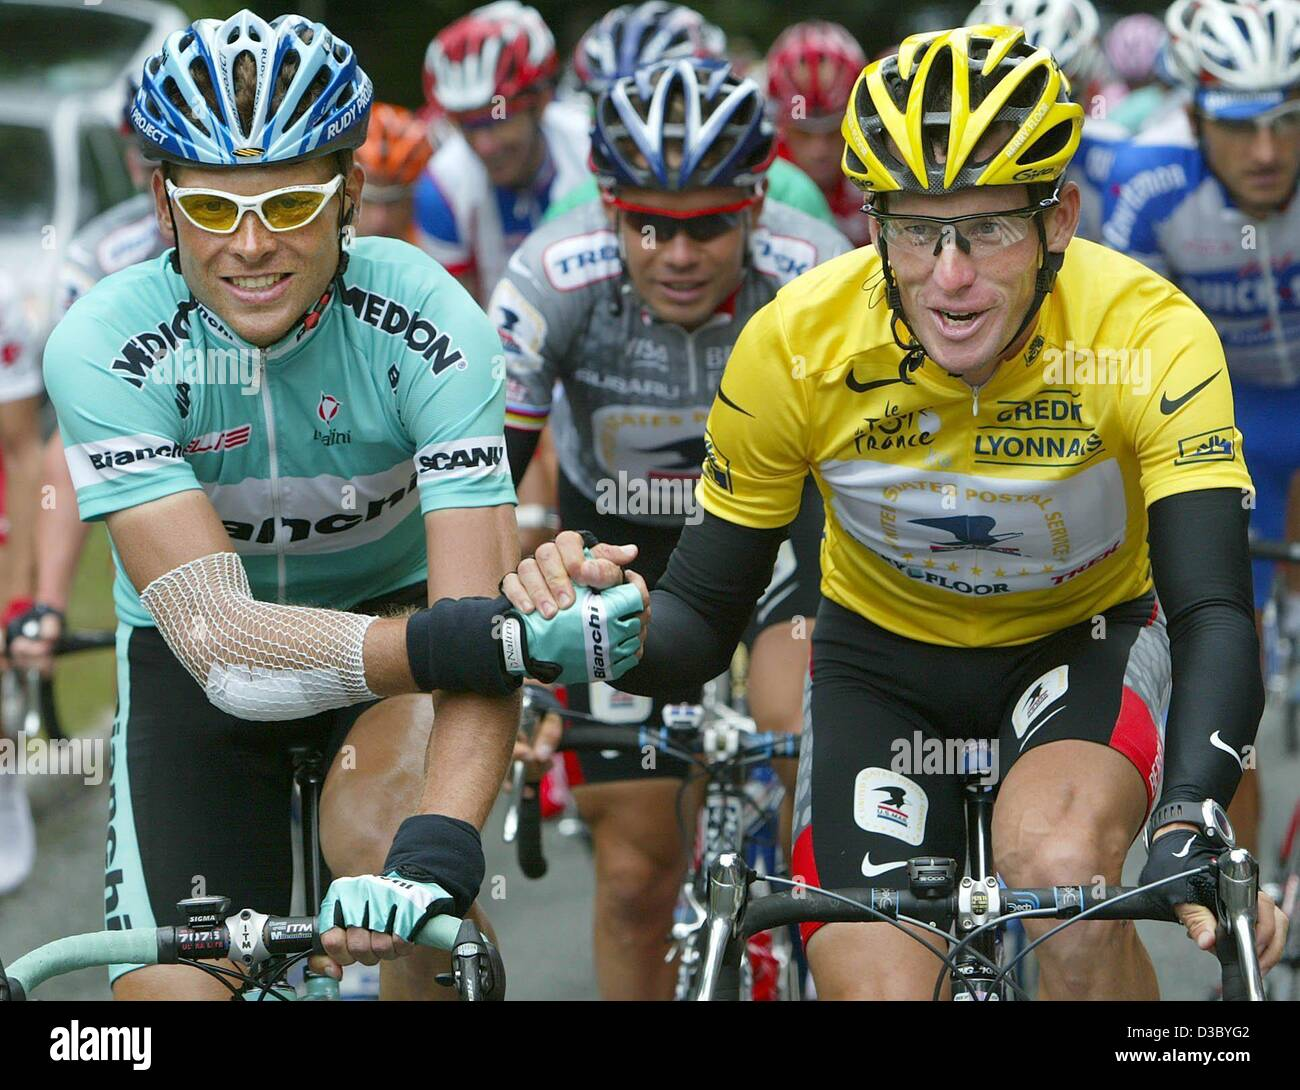 (dpa) - German Jan Ullrich (L) of Team Bianchi congratulates US Postal-Berry  Floor s Lance Armstrong from the US b6a6eebf5